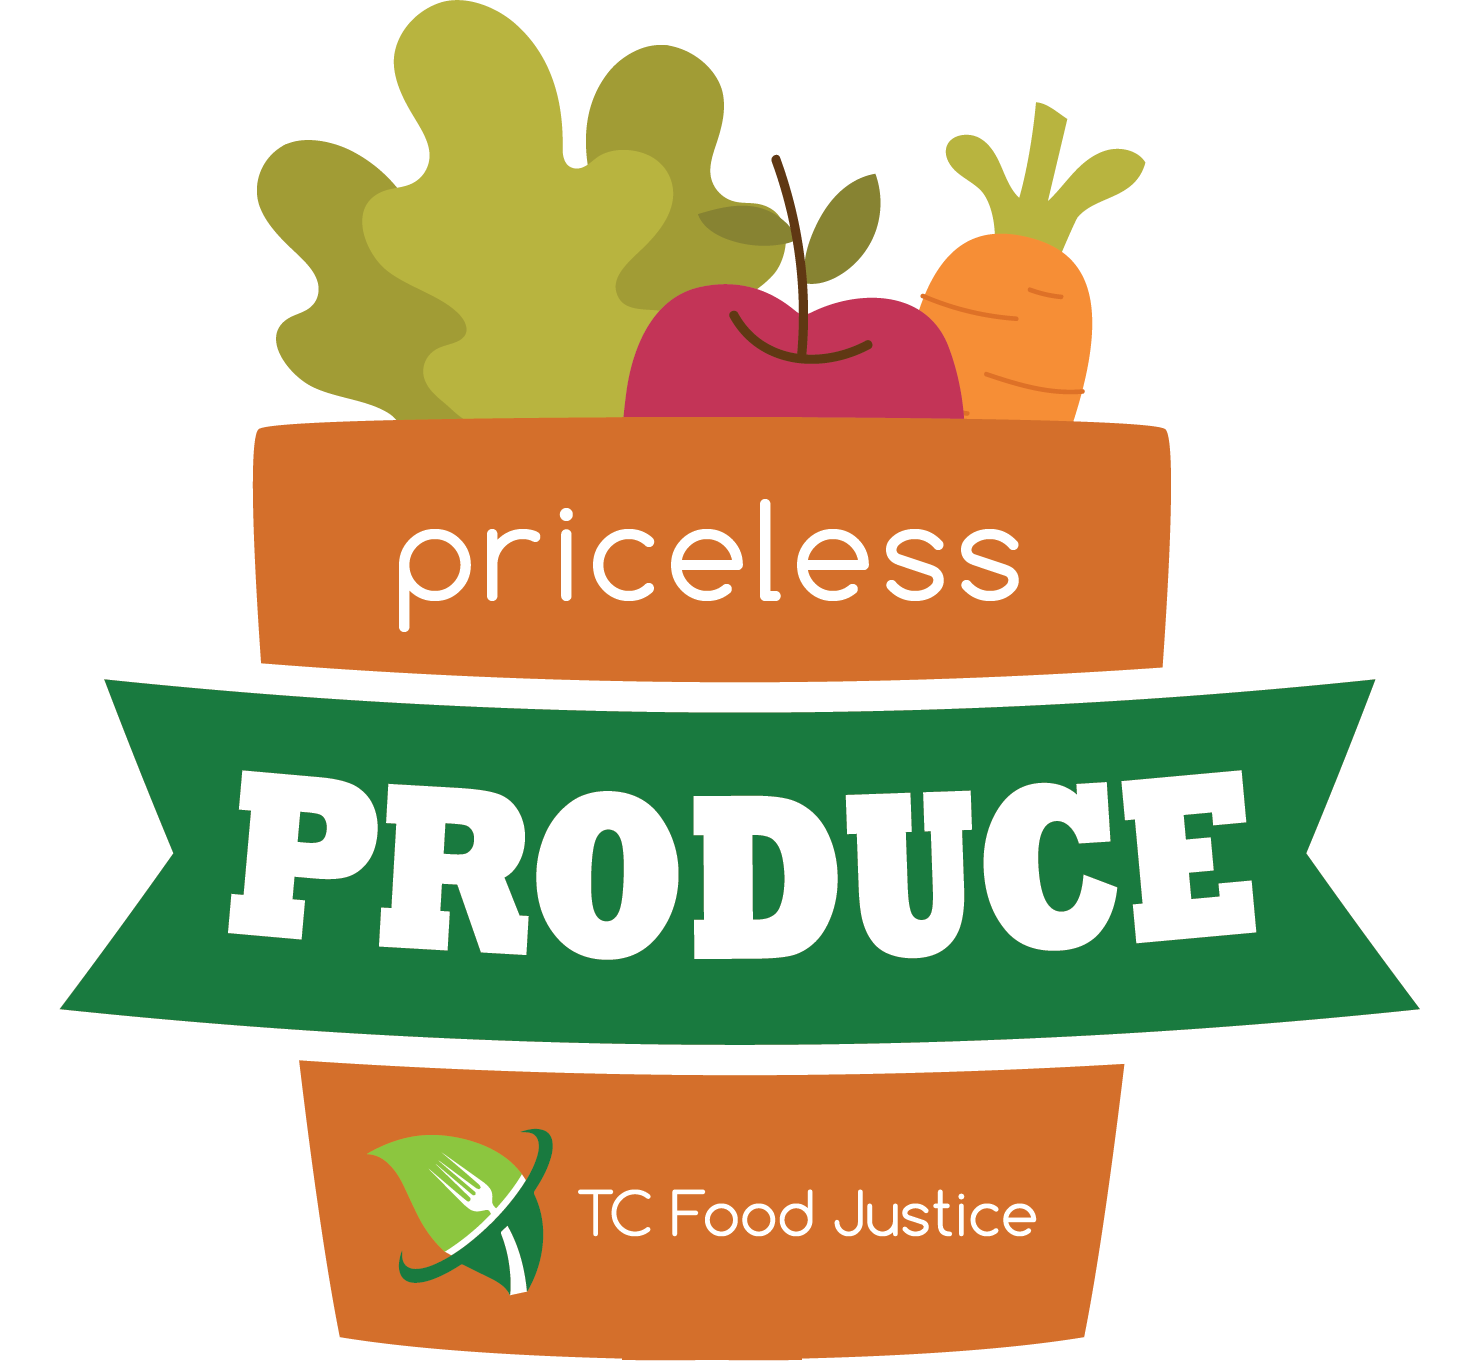 PRICELESS PRODUCE PROGRAM - Working collaboratively with the residents of a 199- unit public housing high-rise building in Minneapolis, we created and launched a new pilot program in Spring 2019, the Priceless Produce Program (PPP). The idea behind PPP is simple; PPP reduces barriers to accessing high quality, fresh foods for those who need them most. With this in mind, we worked with the residents to create a free, weekly pop-up market in their building featuring fresh produce and nutrient rich breads. The weekly food distribution event has helped to eliminate the cost and travel concerns many of the residents used to face when trying to access fresh foods for their households. It has also provided a weekly social opportunity for residents volunteering to help with the event and for those coming to select their own fresh food. Residents have expressed how grateful they are to have something like this in their building. Several have also shared that this is the first time in their lives they've had regular, weekly access to high quality, fresh produce.